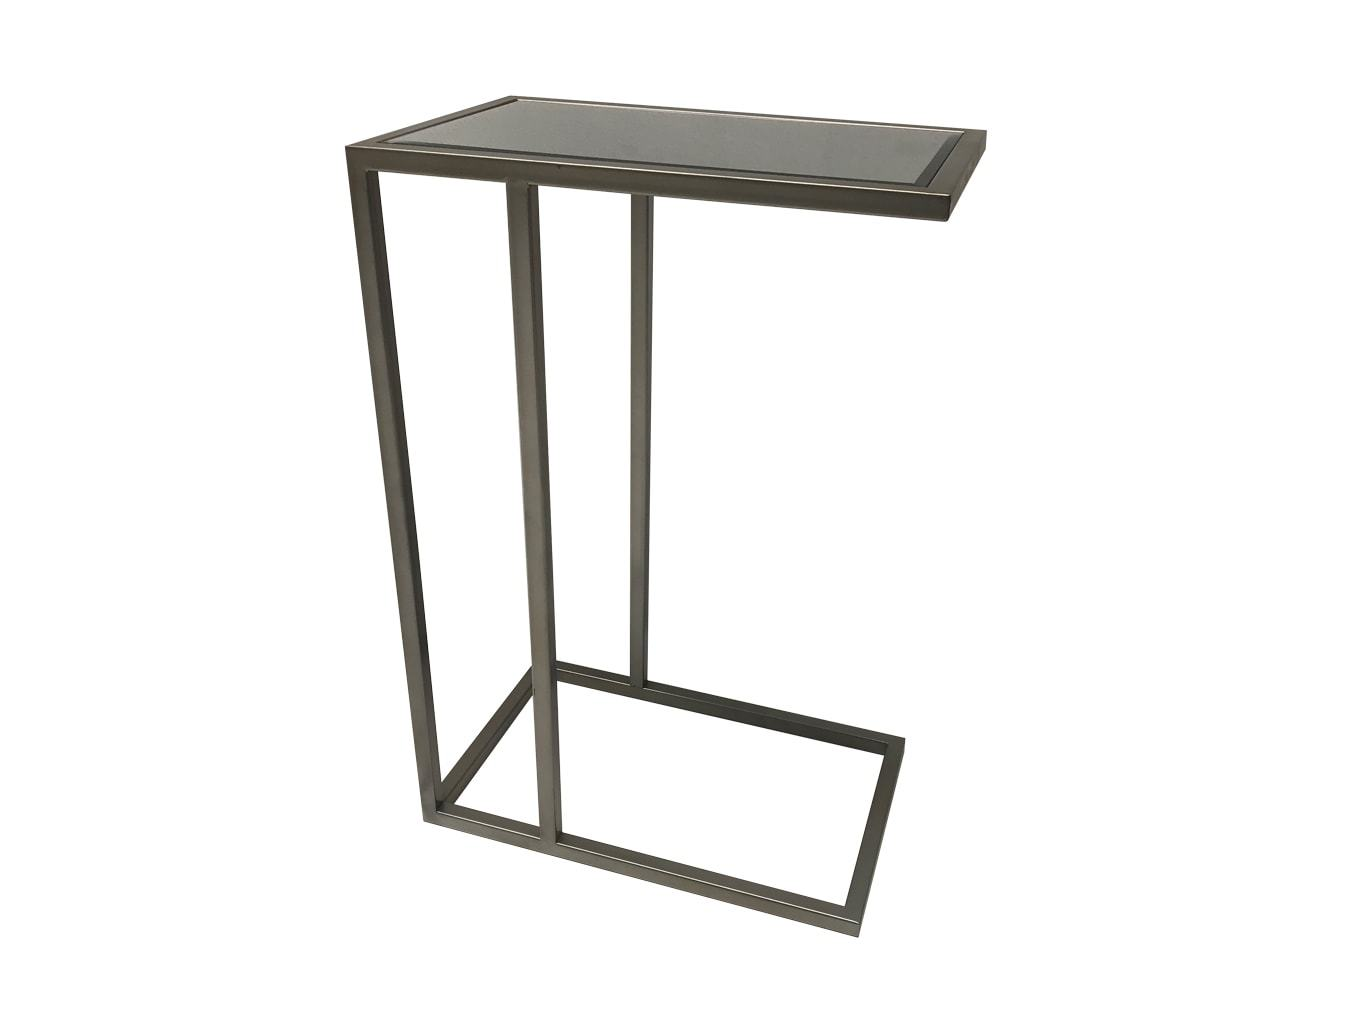 Sofa Table in Silver Colour Finish